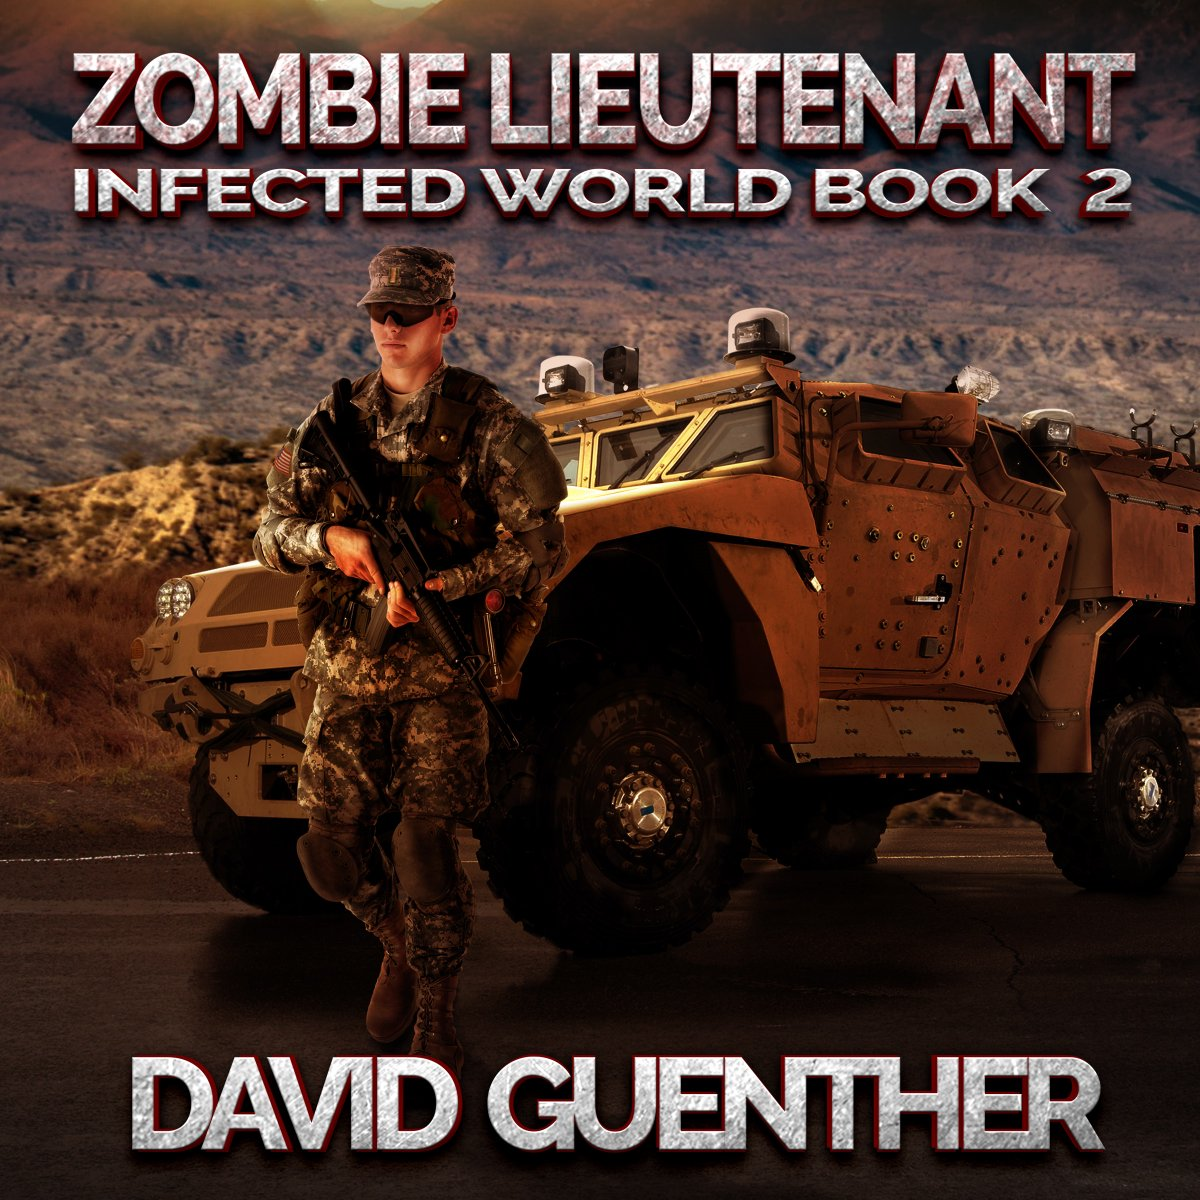 Ignore the screams and gunfire, lock the door, dim the lights and read to ZOMBIE LIEUTENANT. #BookSeries #KU #kindle #eBook #bookaddict #thriller #usn #USAFwomen #airwoman #Marines #army #soldier #zombiehorde #zombiestory https://amzn.to/2T1C3Mppic.twitter.com/XwrvKe1i21